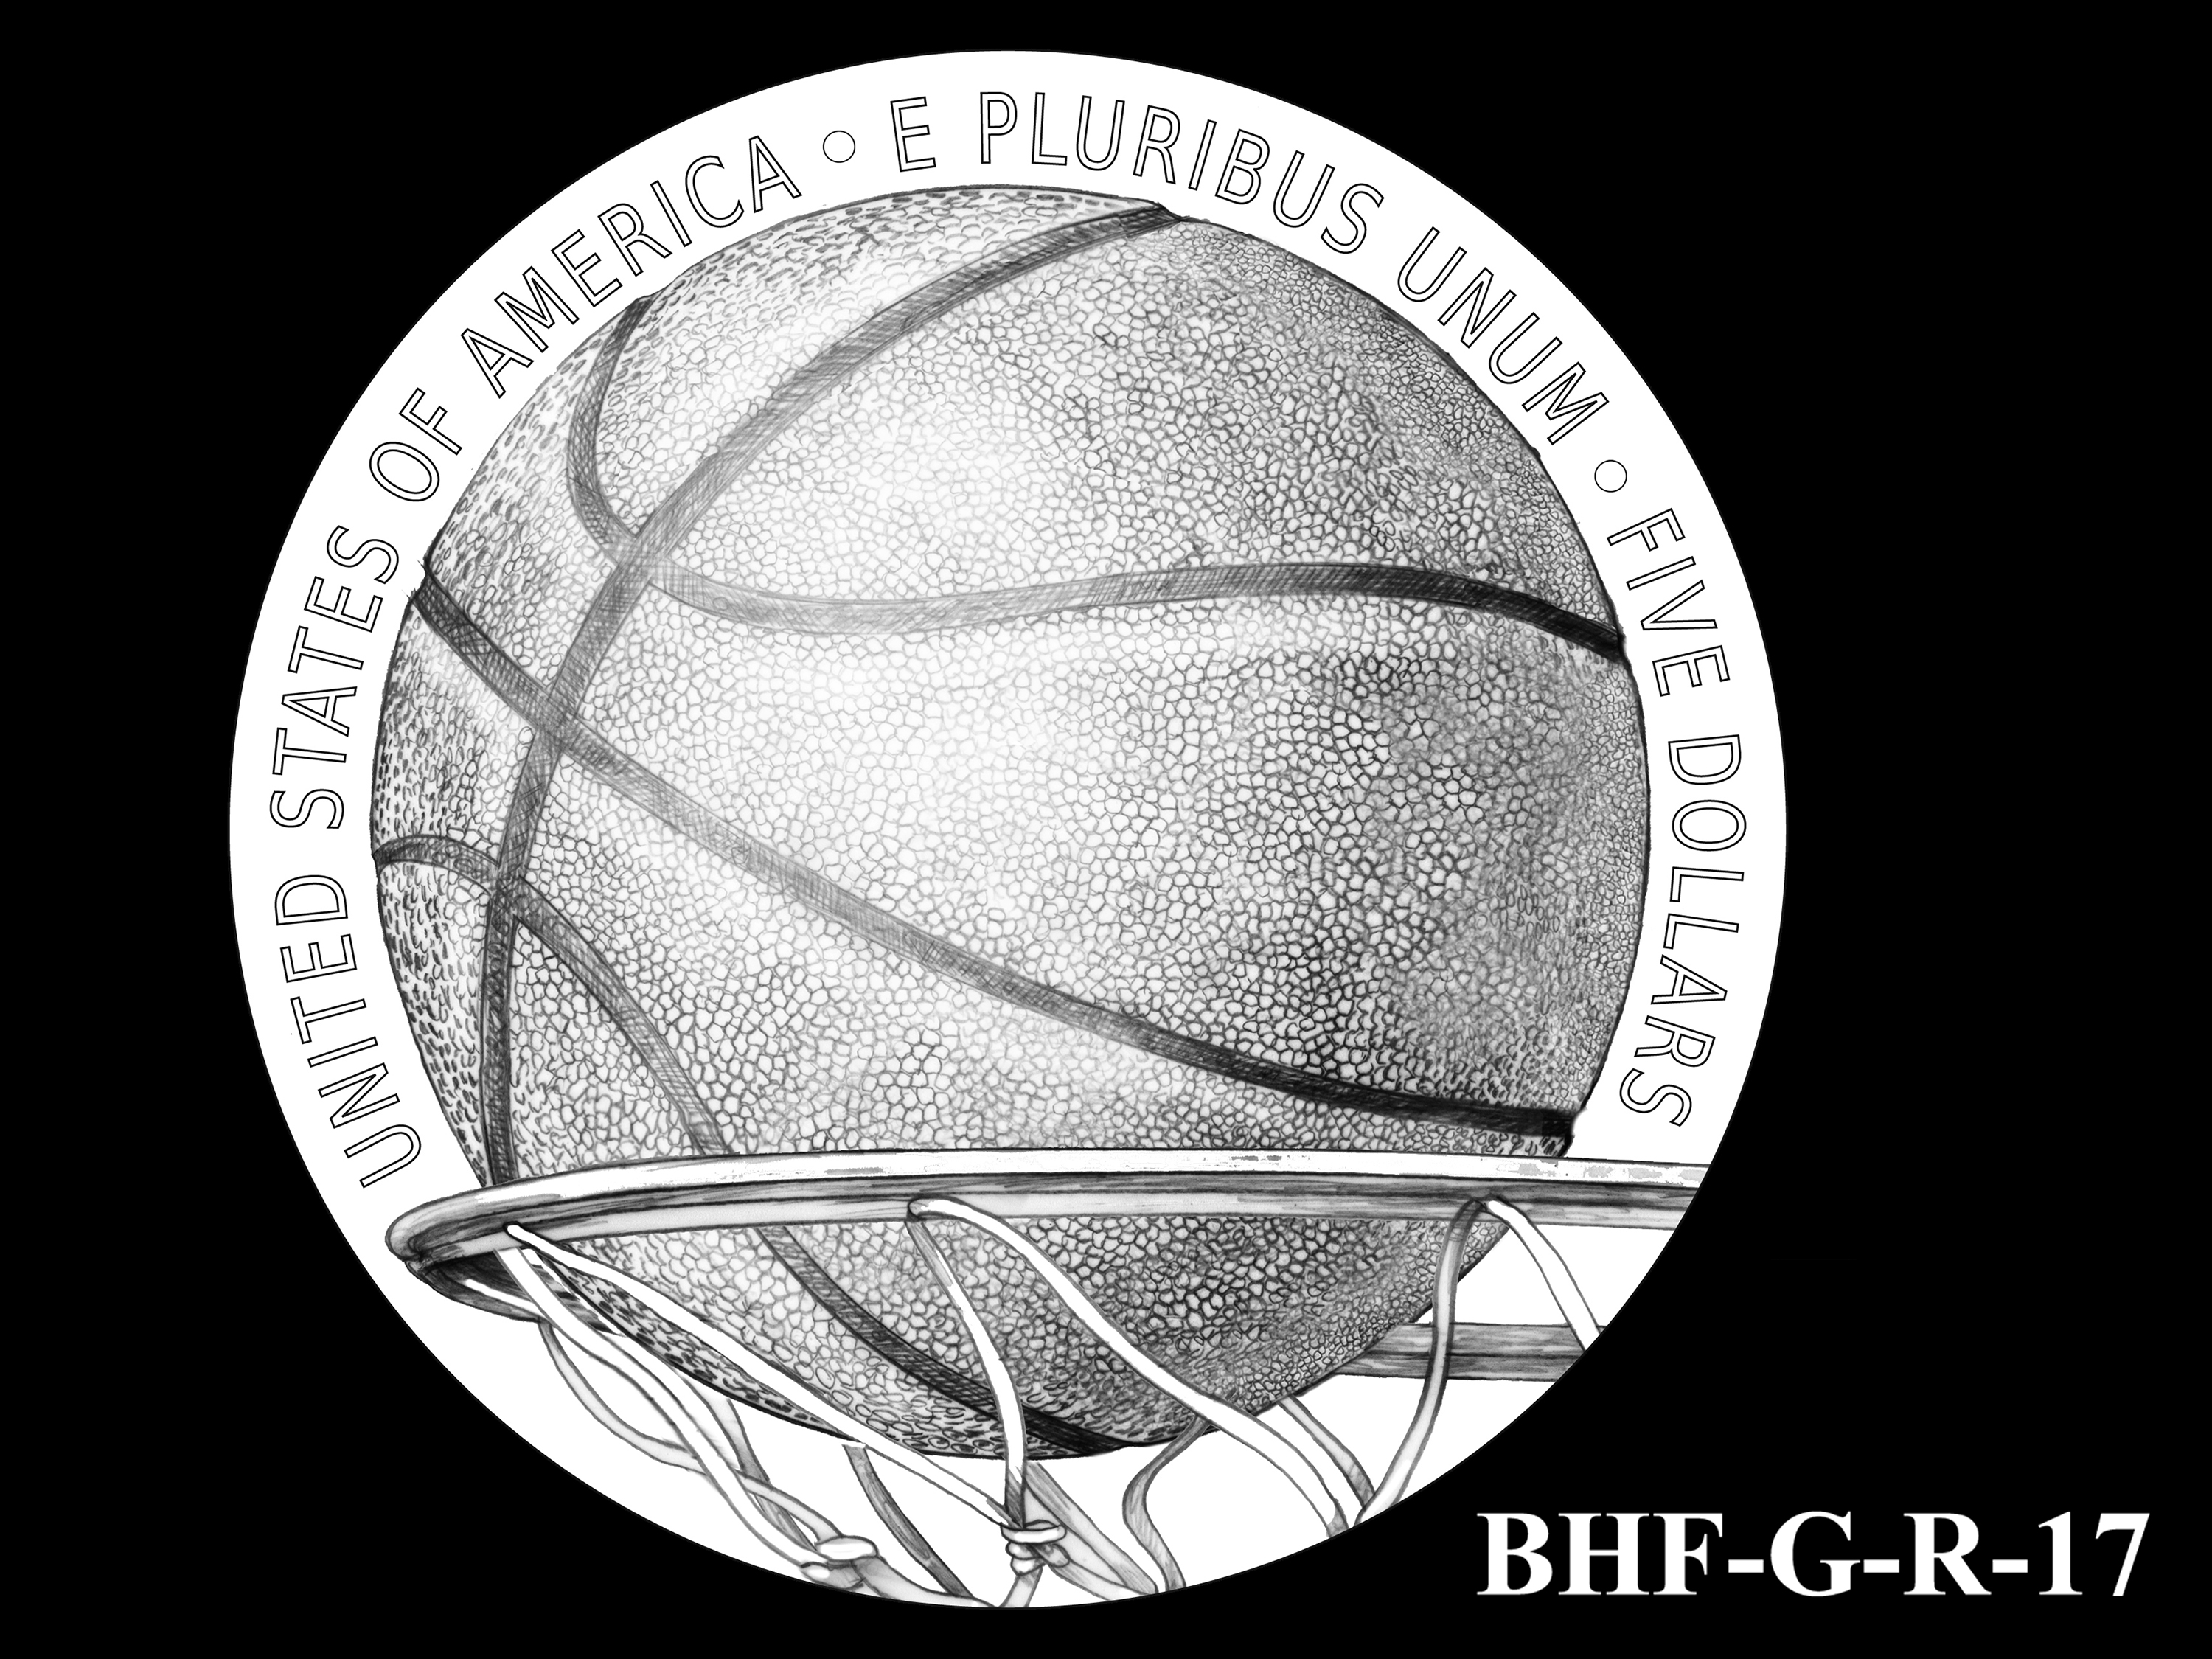 BHF-G-R-17 -- 2020 Basketball Hall of Fame Commemorative Coin Program - Gold Reverse